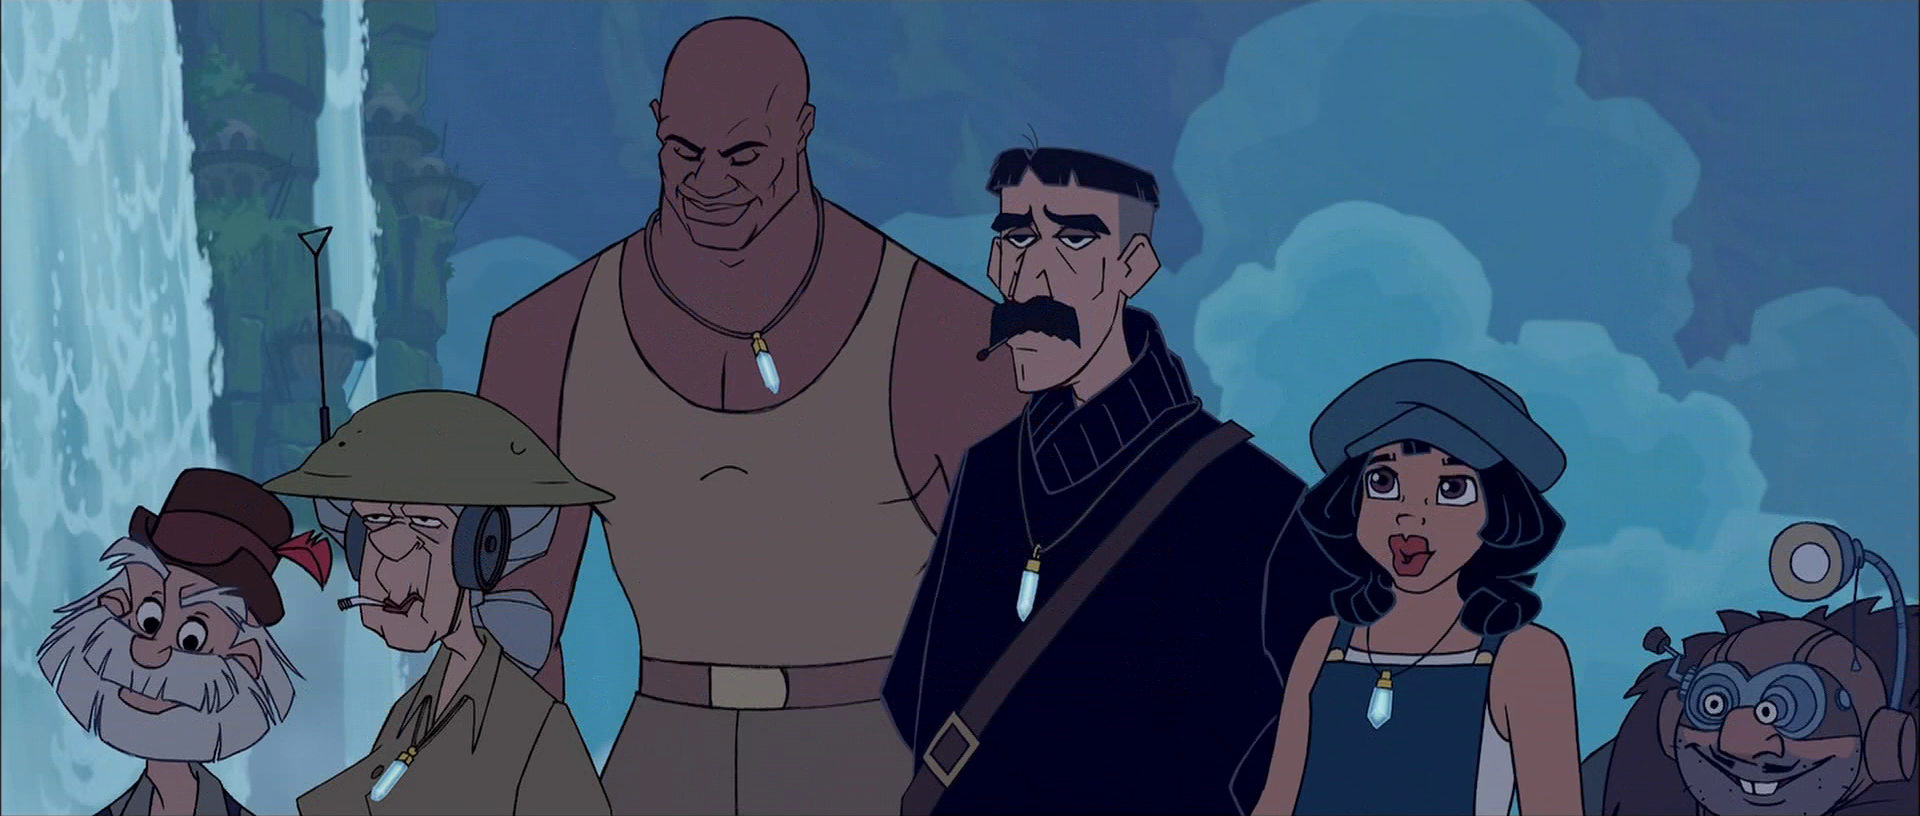 Disney Atlantis Character Design : Atlantis the lost empire best hand animated disney